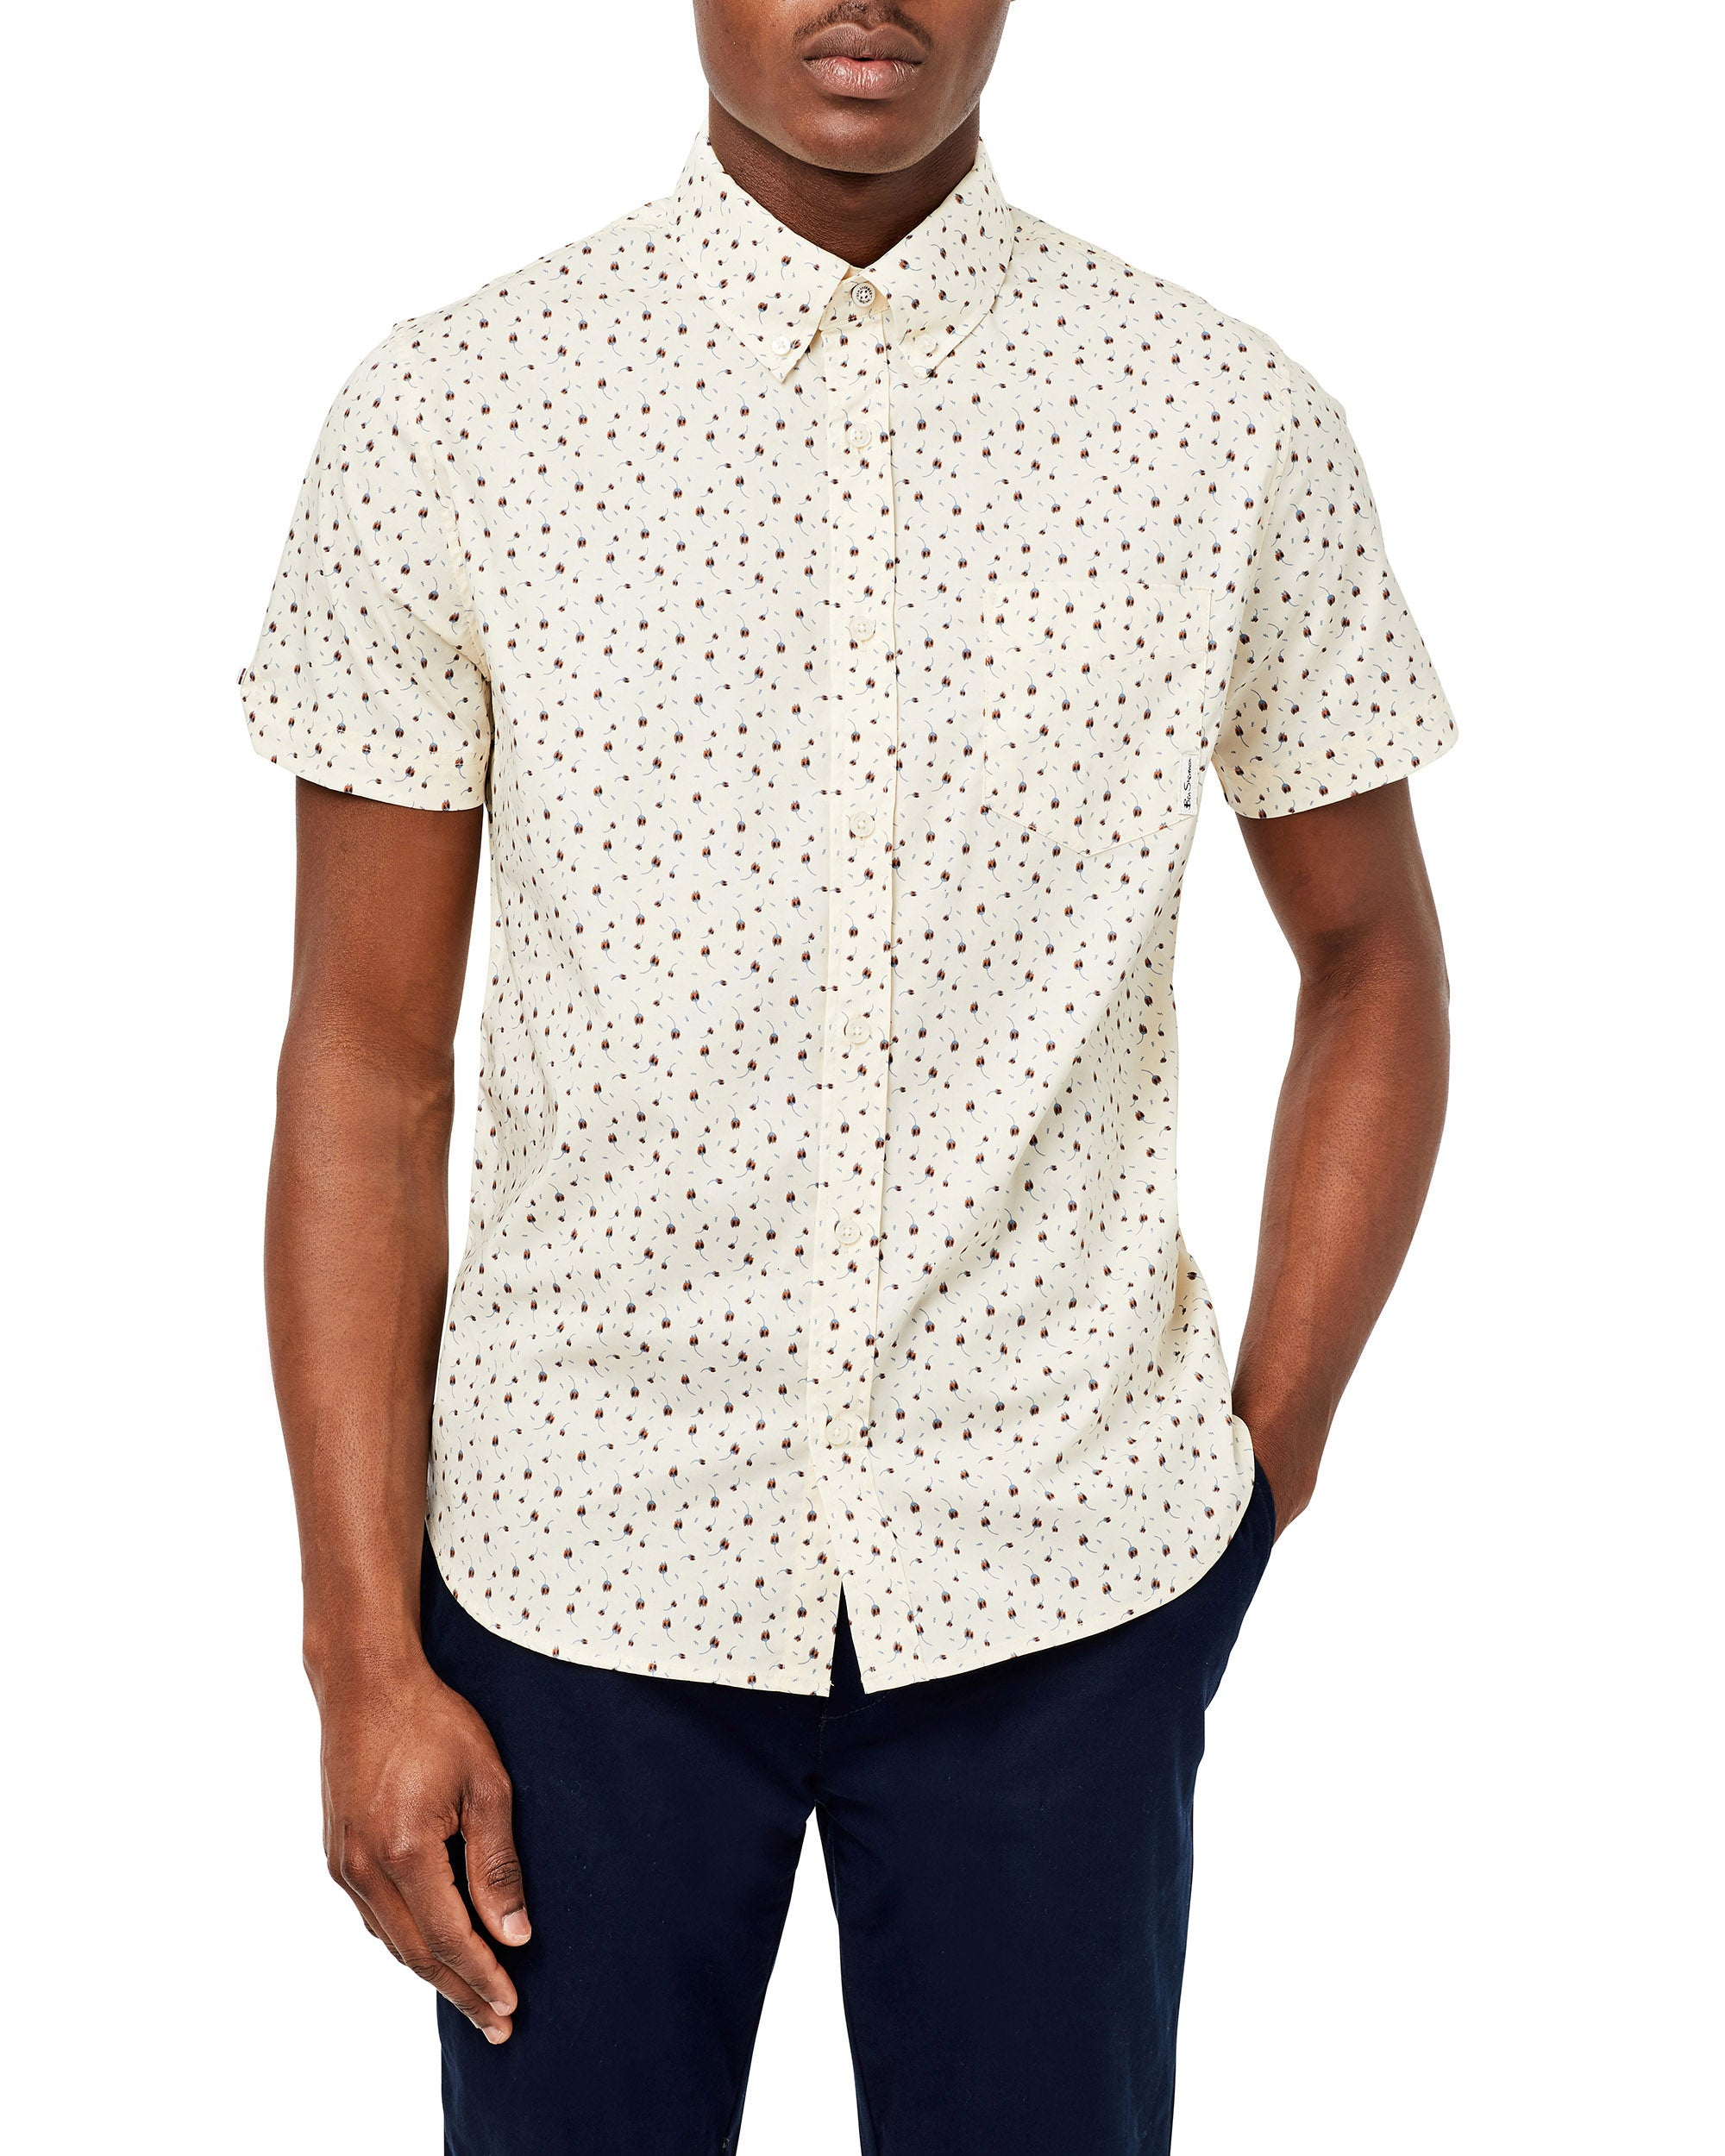 Short-Sleeve Dash-Print Shirt - Ivory